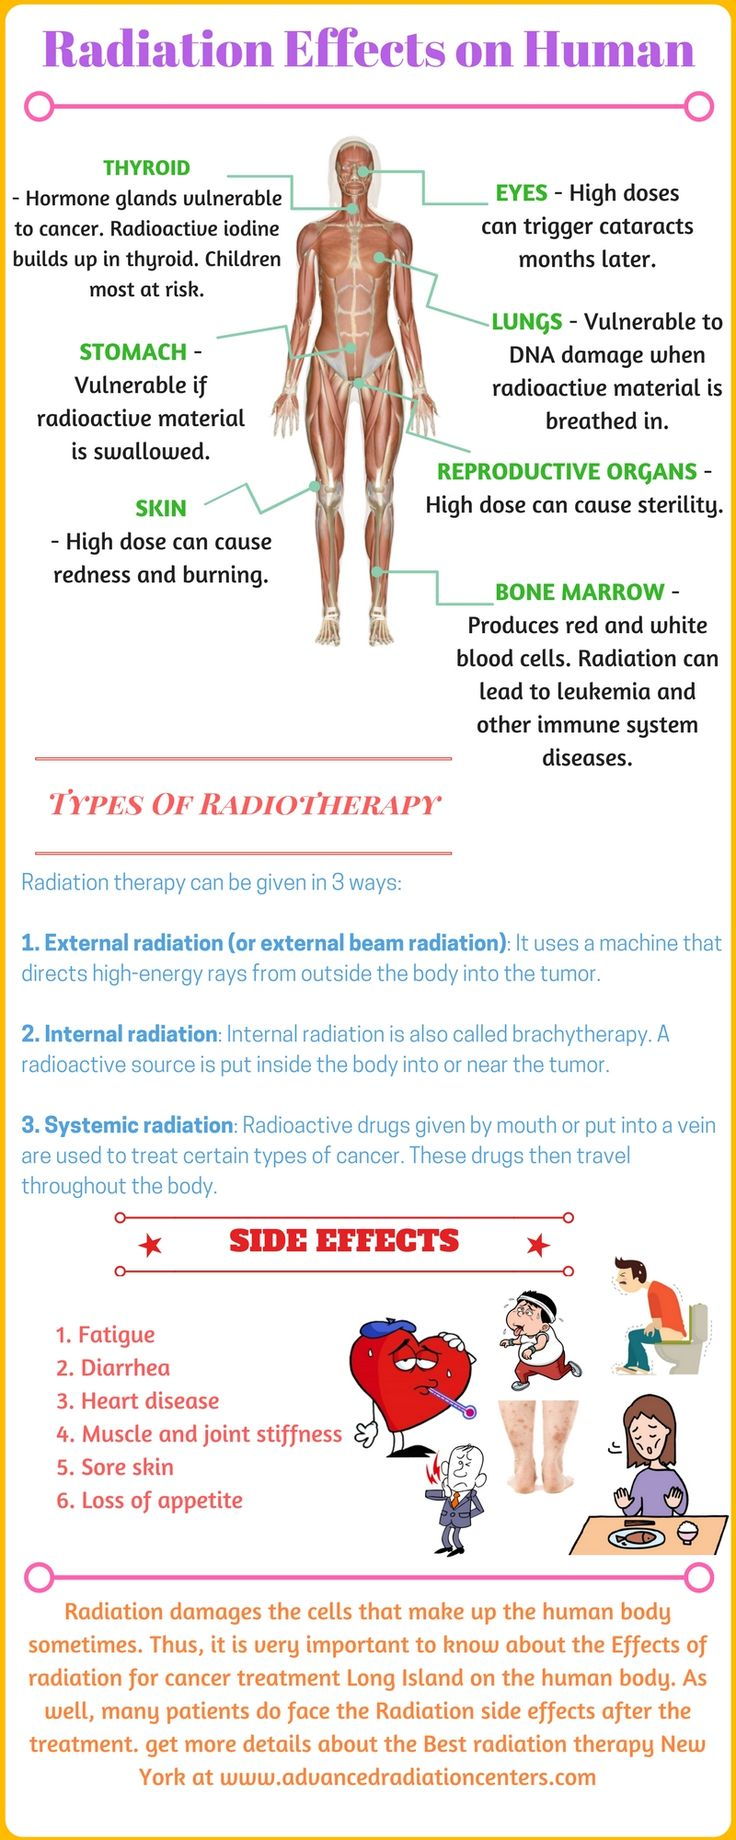 possible cancer causing effects of radiofrequency energy Short-term effects a number of studies have investigated the effects of radiofrequency fields on brain electrical activity, cognitive function, sleep, heart rate, and blood pressure etc.